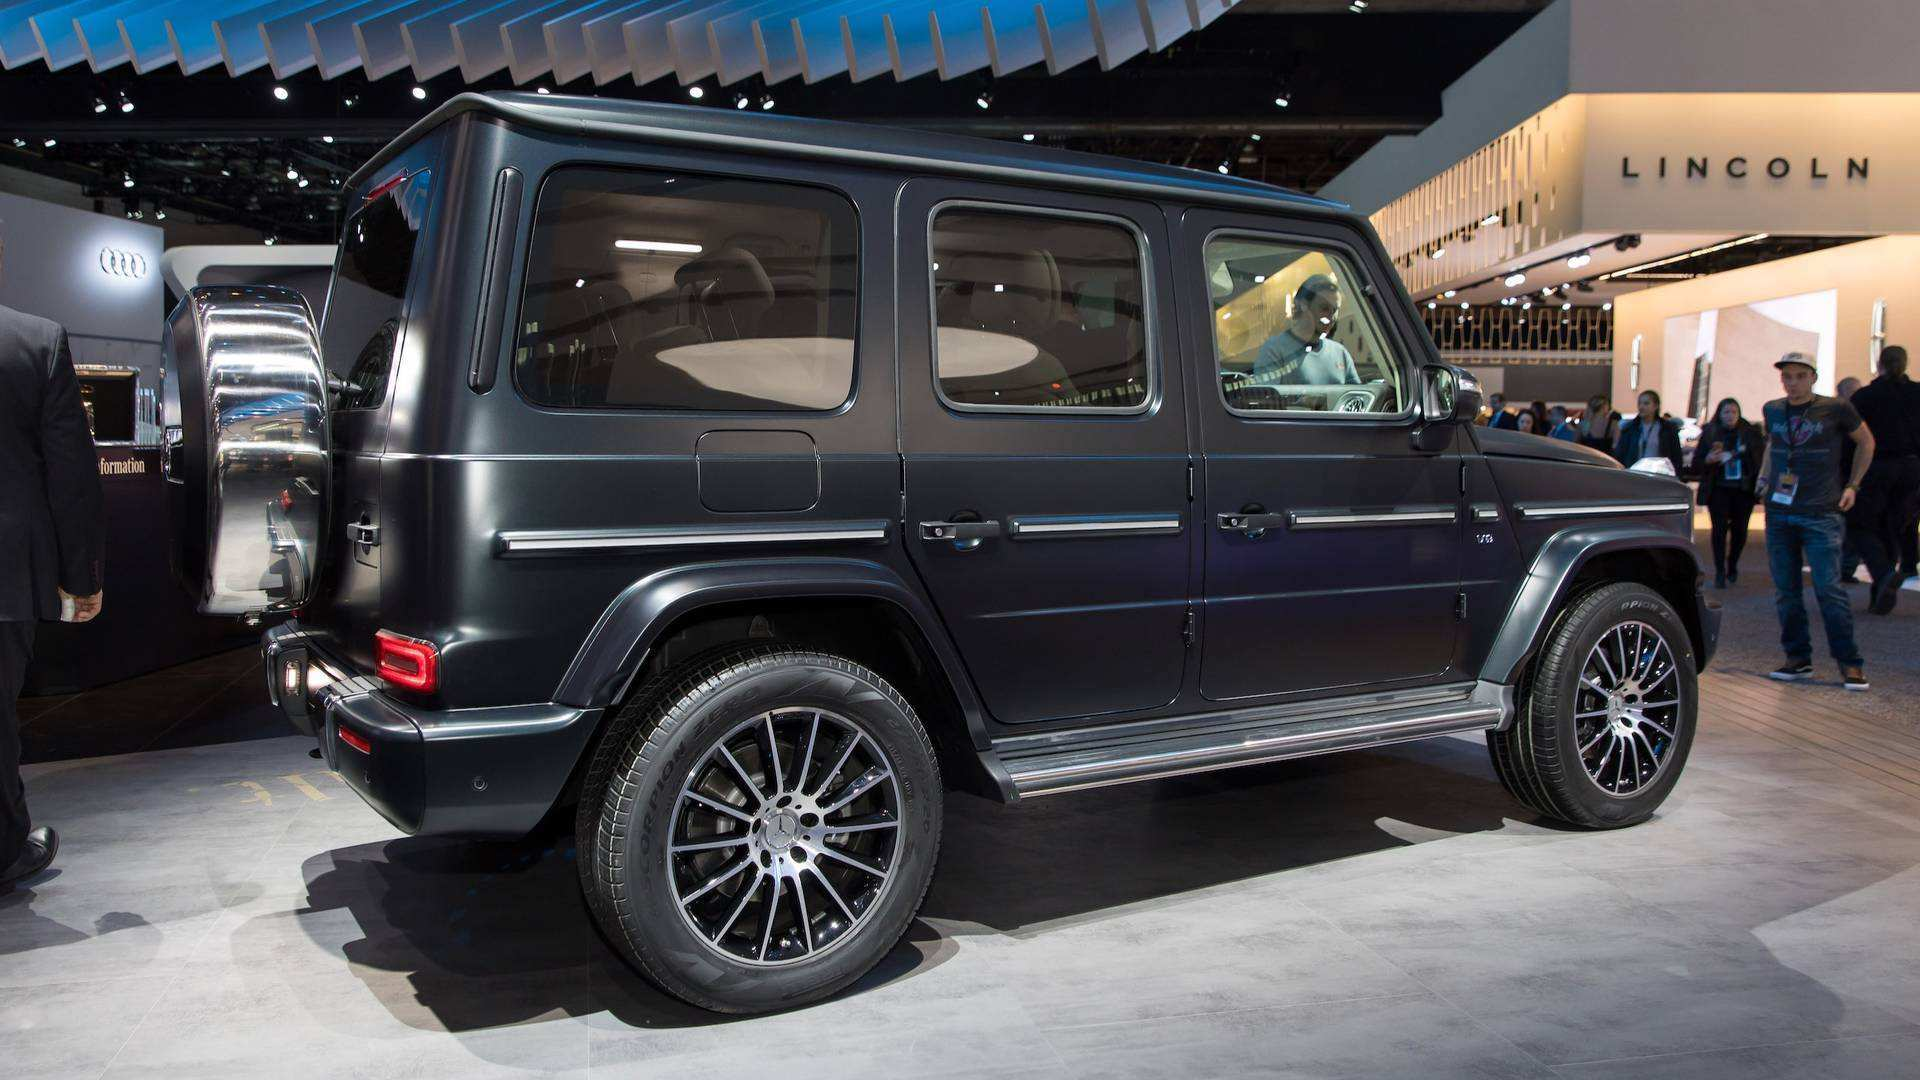 91 All New G500 Mercedes 2019 Interior with G500 Mercedes 2019